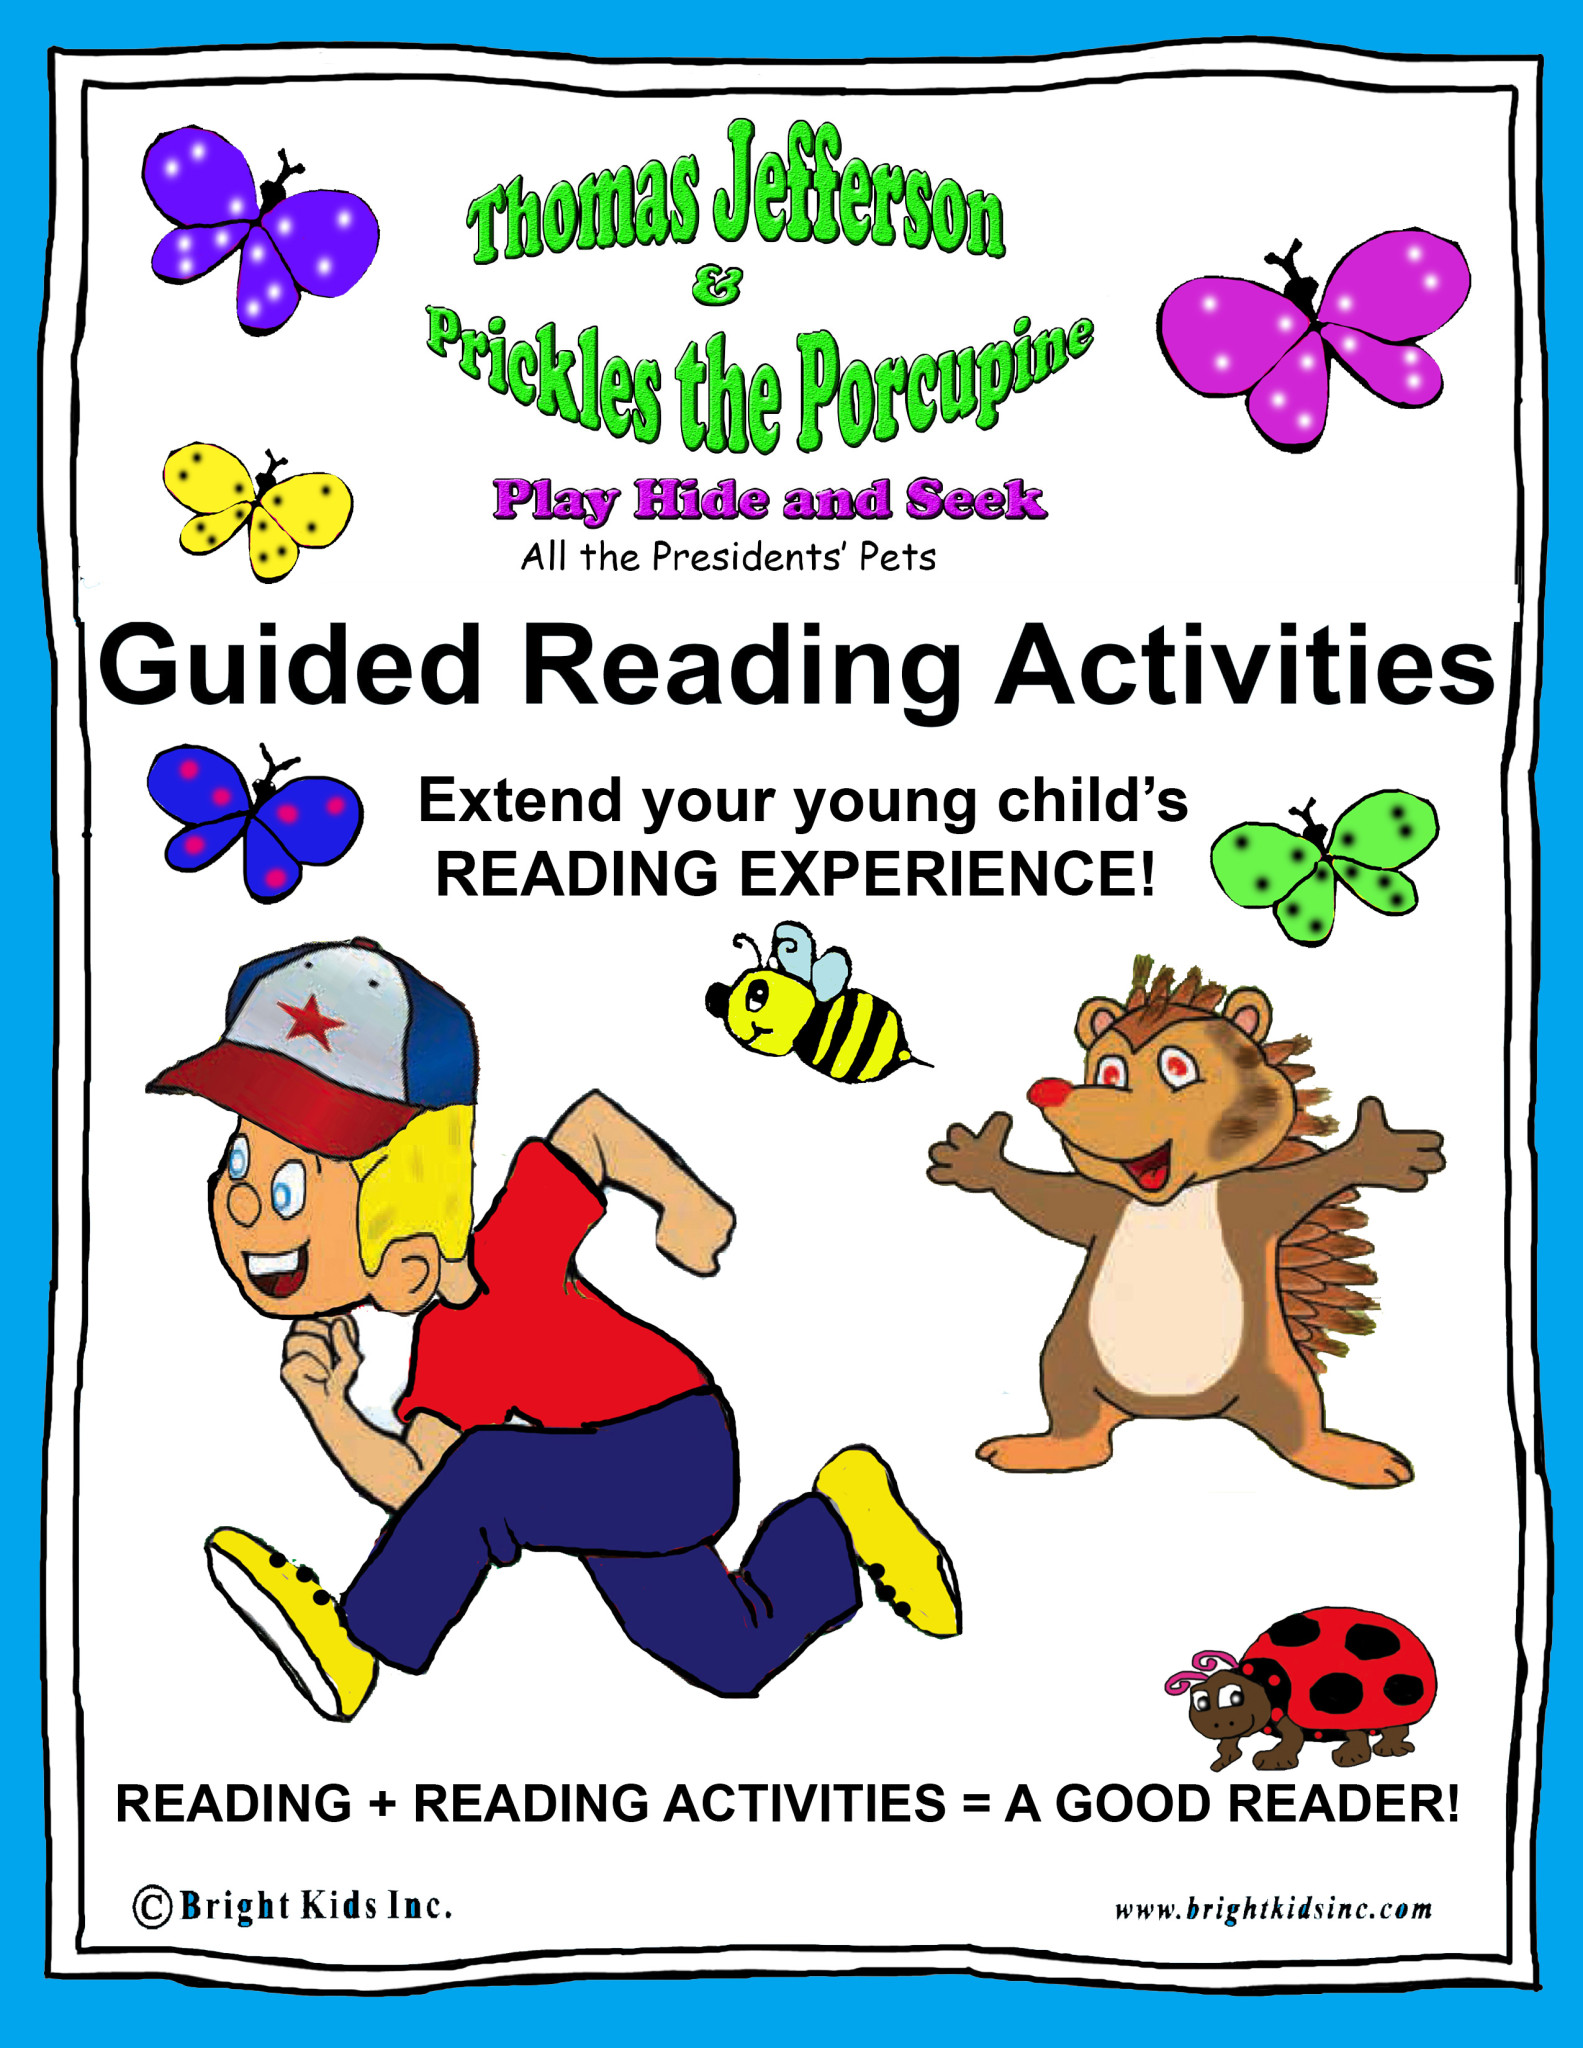 worksheet Thomas Jefferson Worksheet guided reading activities thomas jefferson prickles the 1 a3 cover j guide r